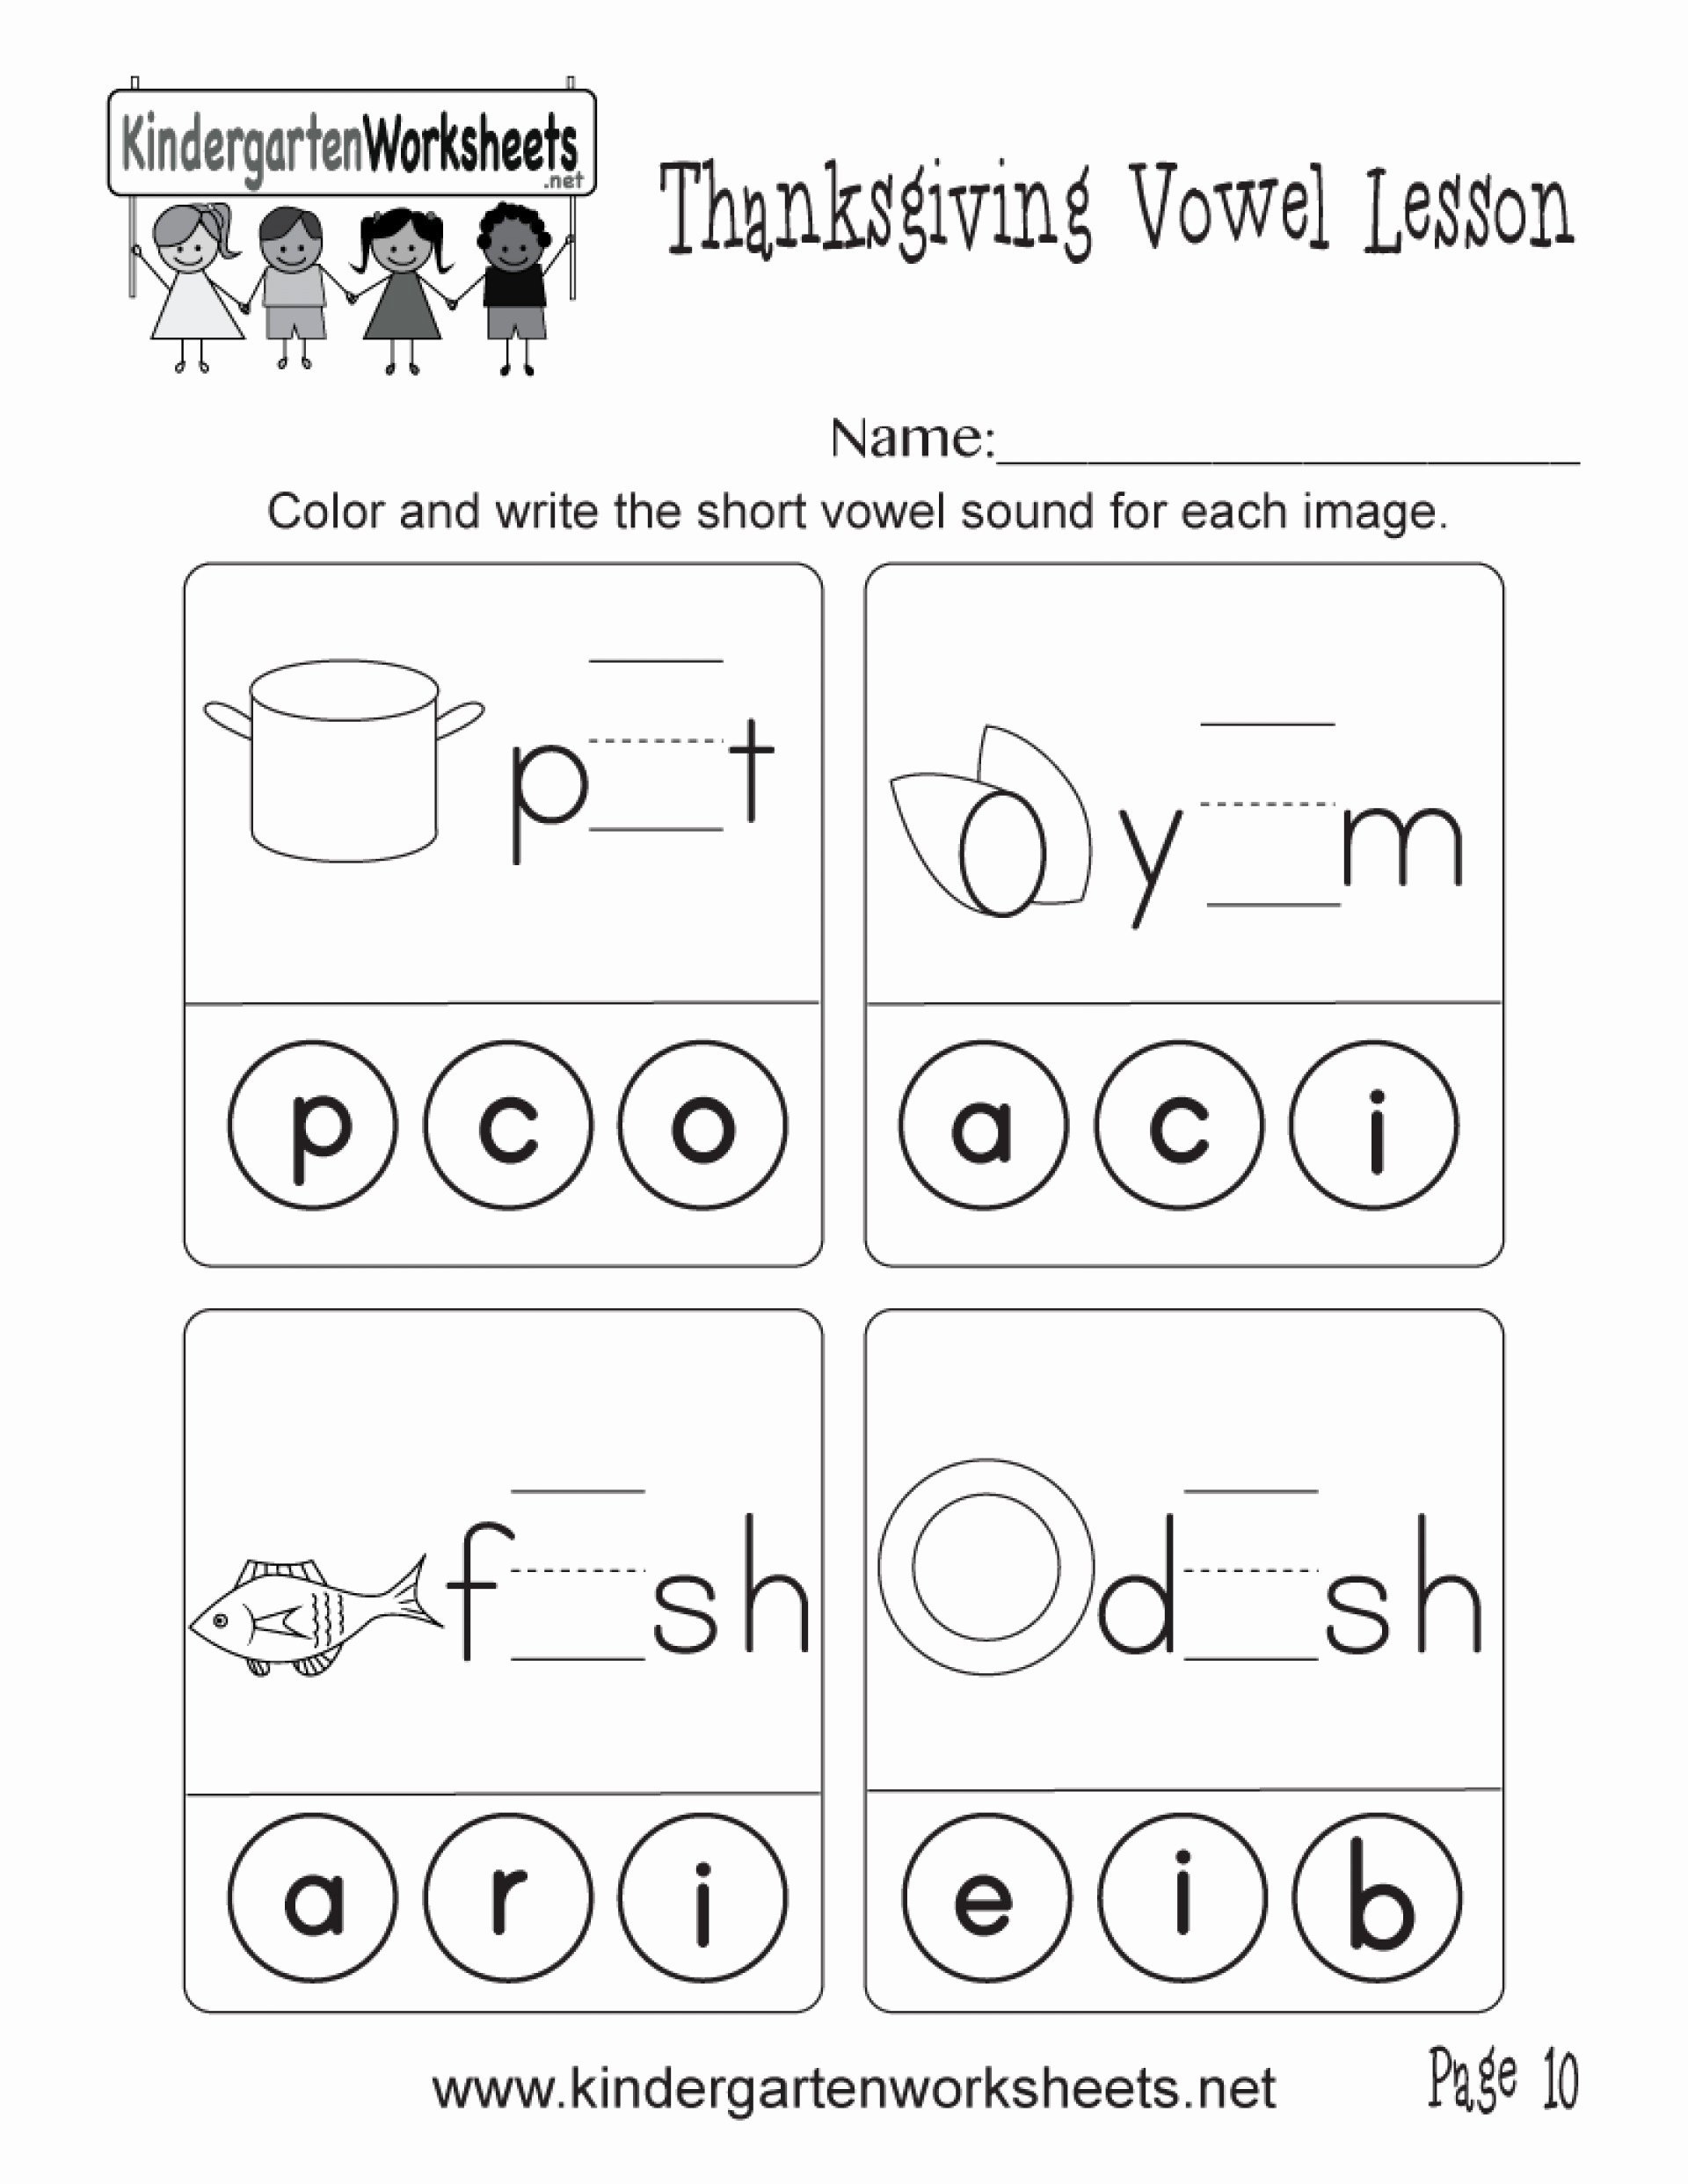 Long Vowels Worksheets for Preschoolers Inspirational and Short Vowel sounds Worksheets Learning Printable